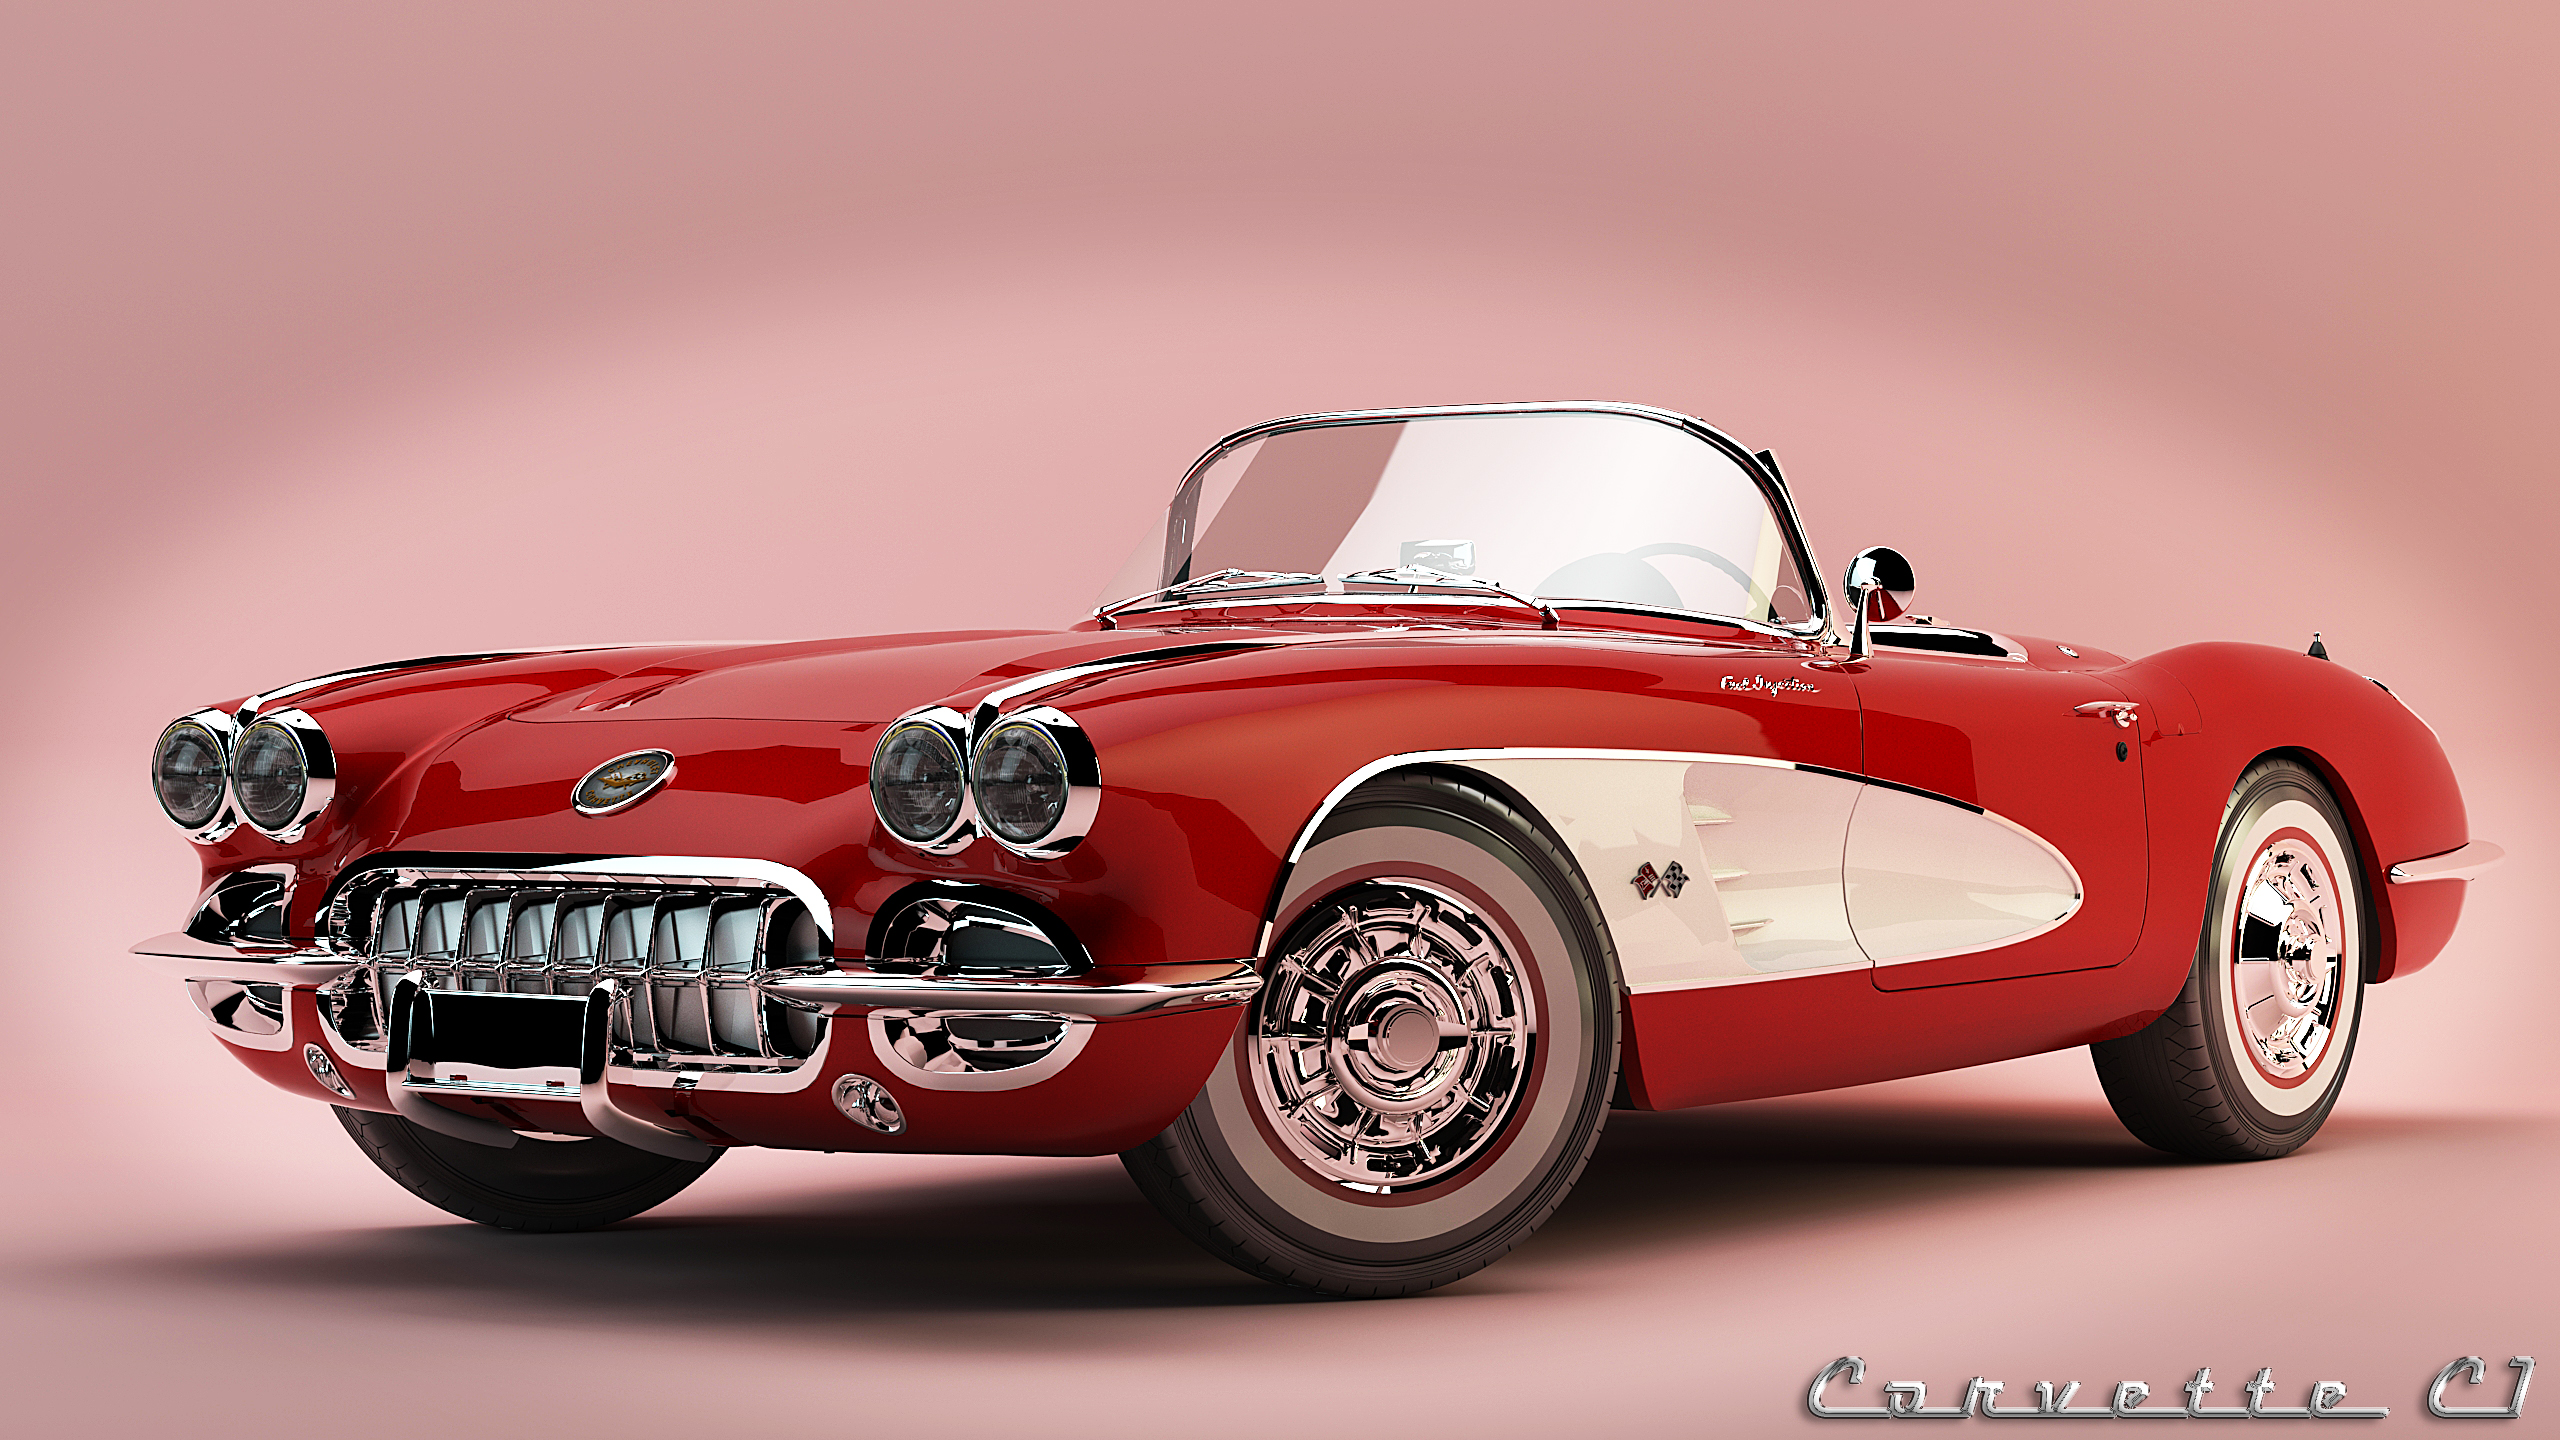 1960 chevrolet corvette c1 by nancorocks on deviantart. Black Bedroom Furniture Sets. Home Design Ideas